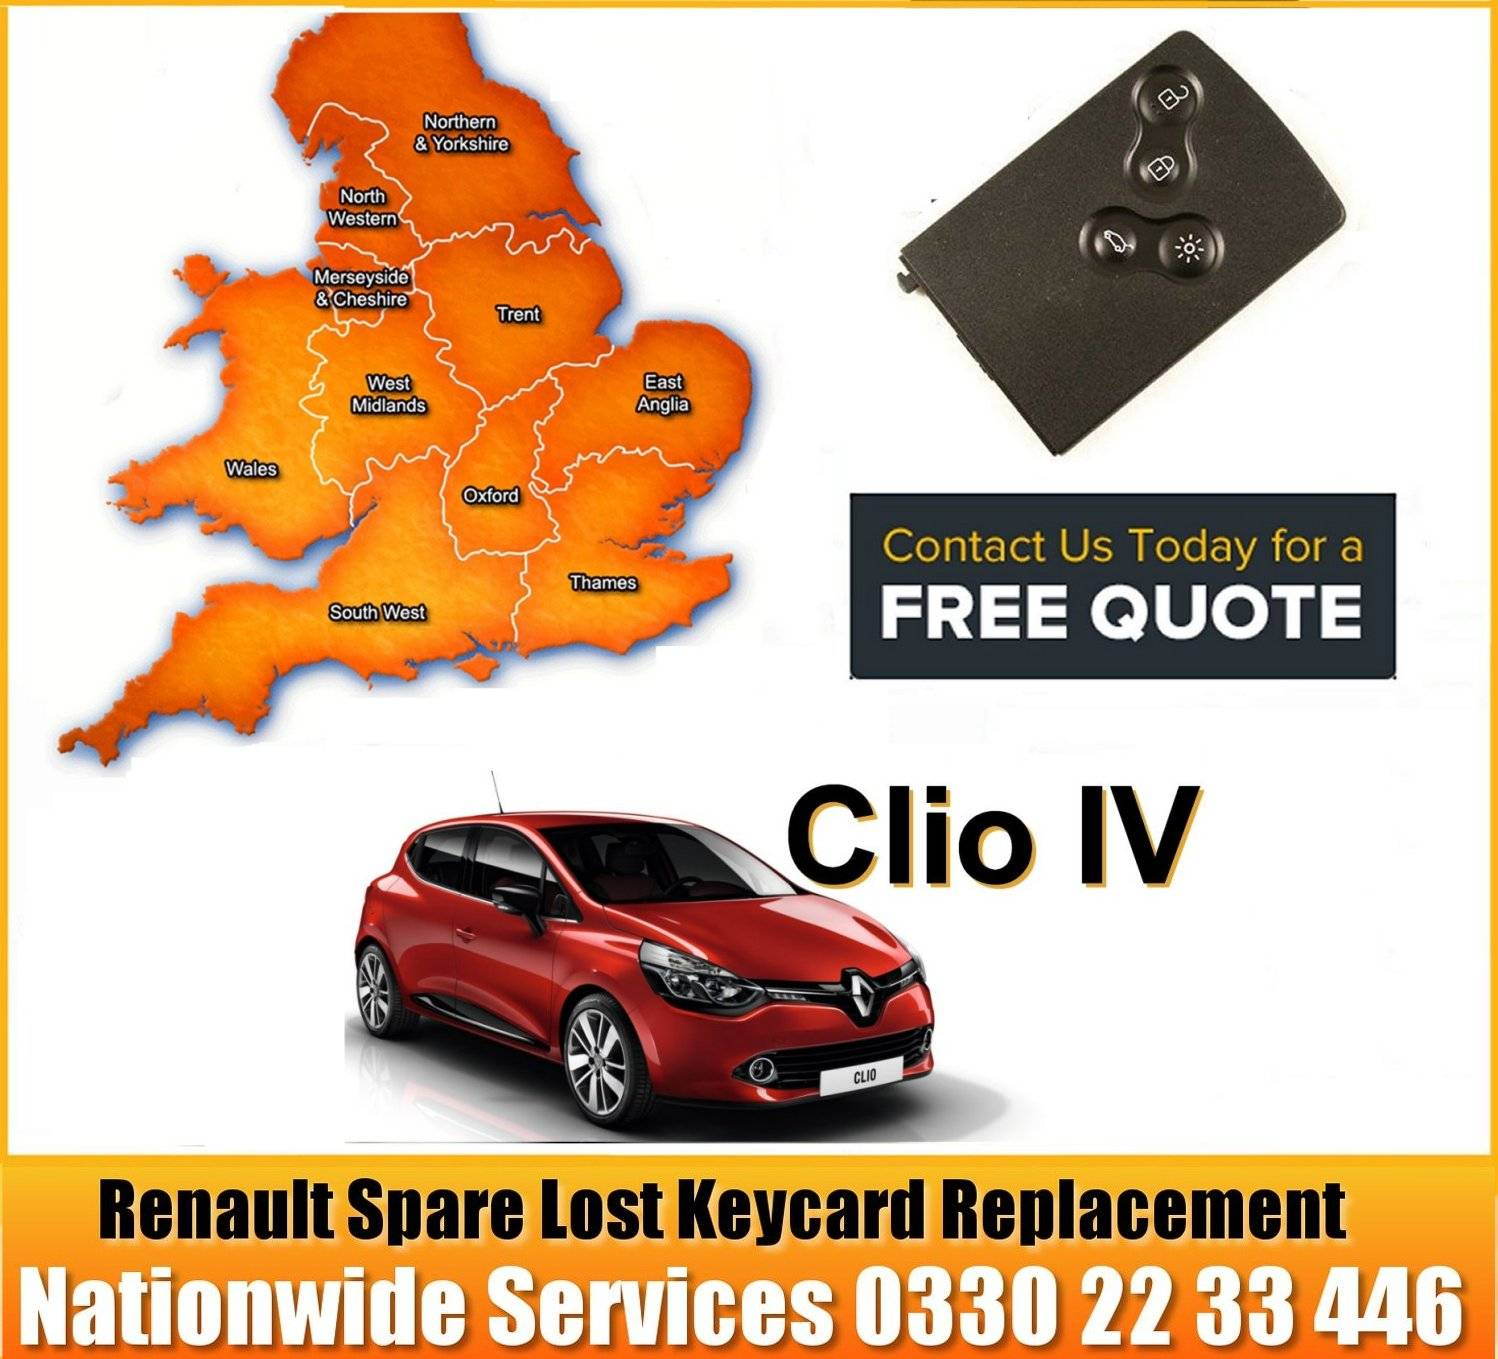 Renault Key Card replacement  Oldham Chadderton  Shaw and Crompton  Failsworth  Lees  Royton  Saddleworth Rochdale Heywood  Littleborough  Middleton  Milnrow  Newhey  Wardle